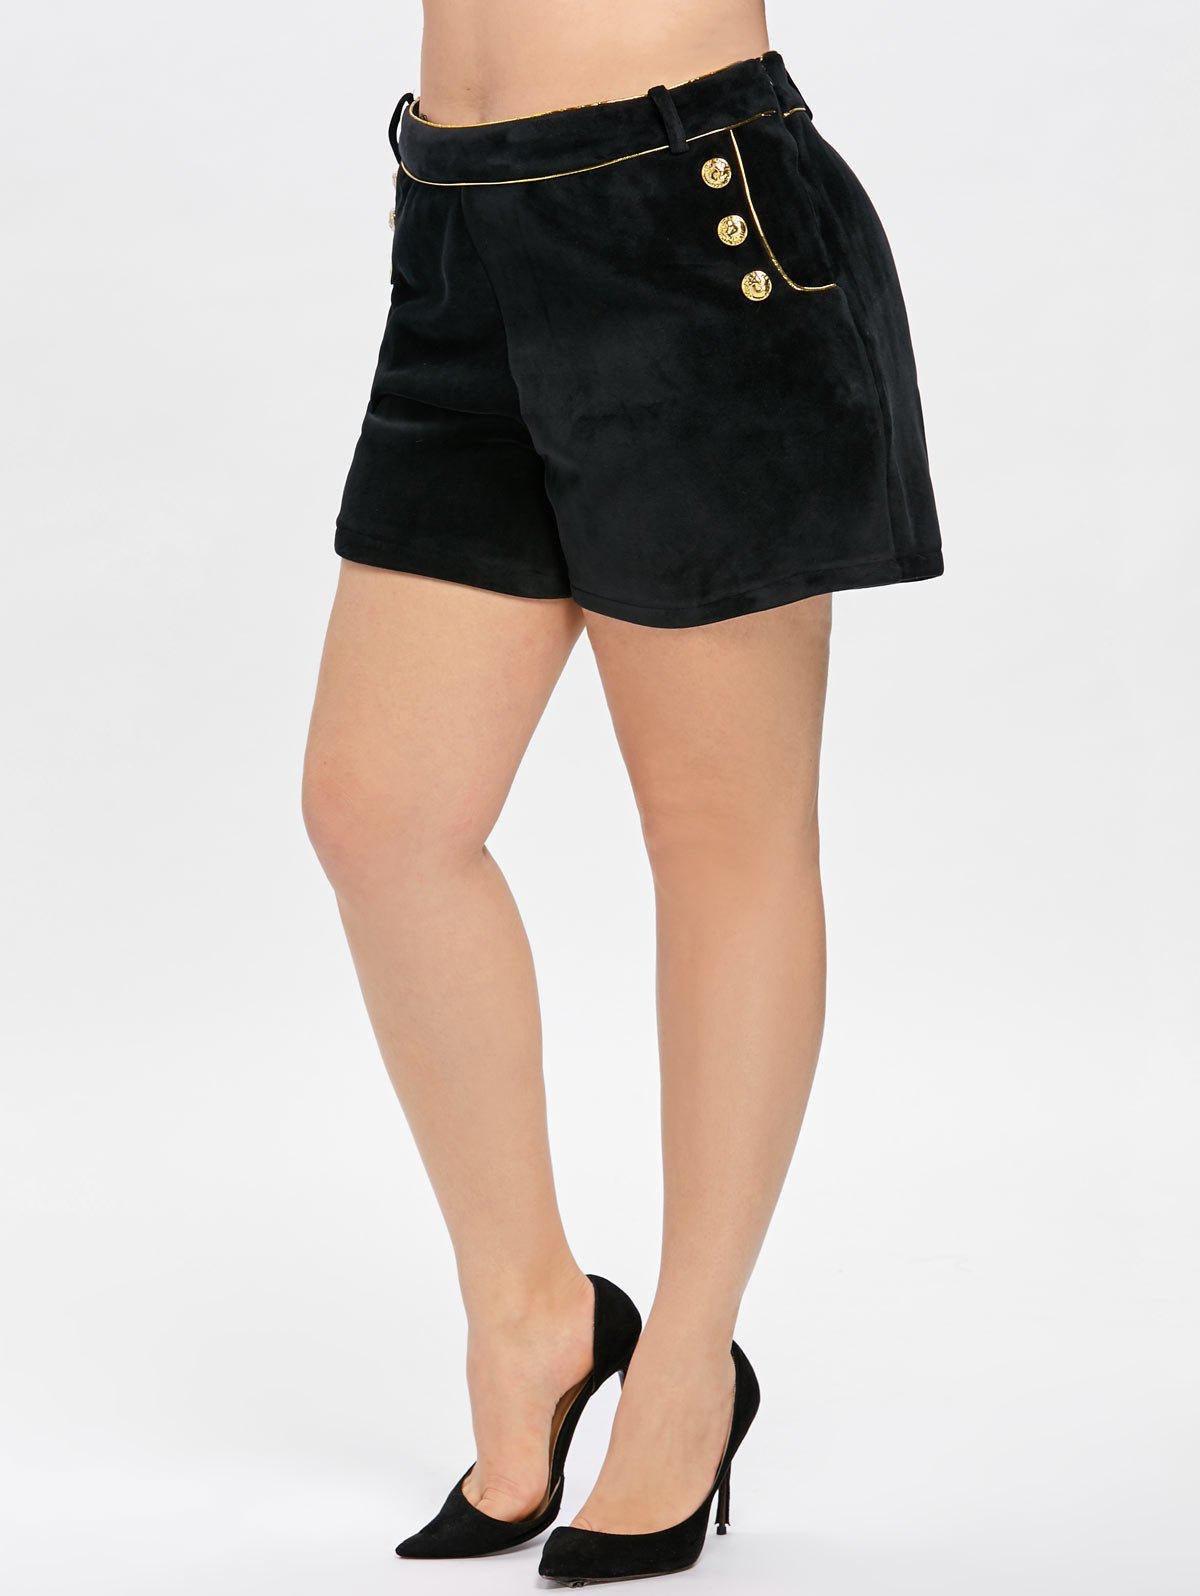 New Double Breasted Button Plus Size Velvet Shorts